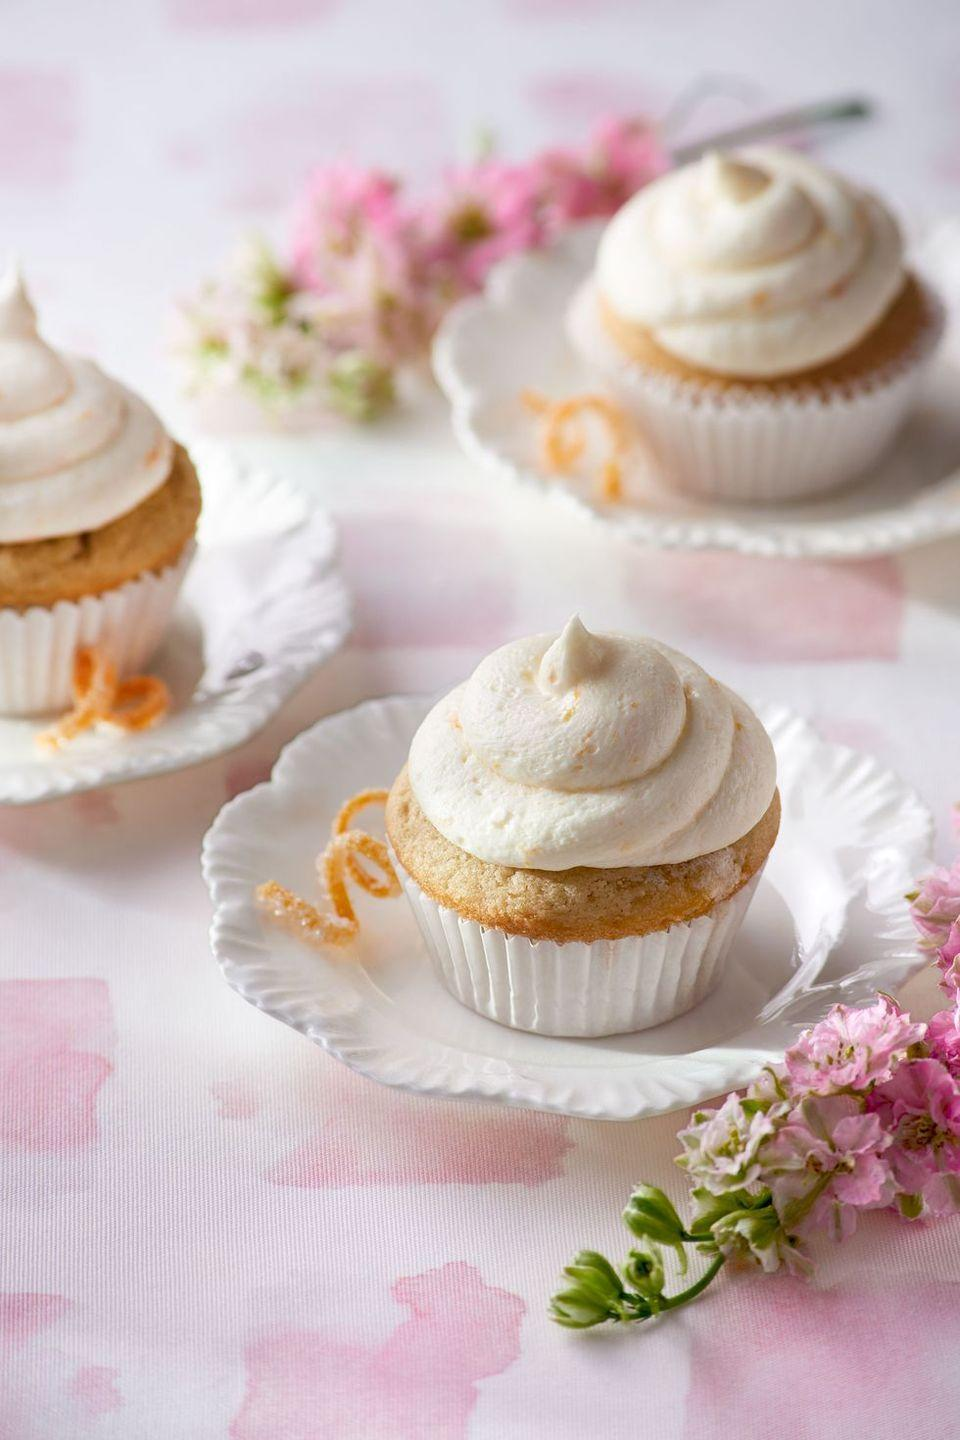 """<p>For a more subtle treat, infuse cake batter with steeped Lady Grey tea for a post-dinner caffeine boost. </p><p><em><a href=""""https://www.countryliving.com/food-drinks/recipes/a37732/lady-grey-cupcakes-with-orange-zest-frosting-recipe/"""" rel=""""nofollow noopener"""" target=""""_blank"""" data-ylk=""""slk:Get the recipe from Country Living »"""" class=""""link rapid-noclick-resp"""">Get the recipe from Country Living »</a></em><em><strong><a href=""""https://www.goodhousekeeping.com/holidays/easter-ideas/g2353/easter-dinner-menus/"""" rel=""""nofollow noopener"""" target=""""_blank"""" data-ylk=""""slk:"""" class=""""link rapid-noclick-resp""""><br></a></strong></em></p><p><strong>RELATED:</strong> <a href=""""https://www.goodhousekeeping.com/holidays/easter-ideas/g2353/easter-dinner-menus/"""" rel=""""nofollow noopener"""" target=""""_blank"""" data-ylk=""""slk:60 Mix-and-Match Easter Dinner Menus"""" class=""""link rapid-noclick-resp""""> 60 Mix-and-Match Easter Dinner Menus</a><br></p>"""